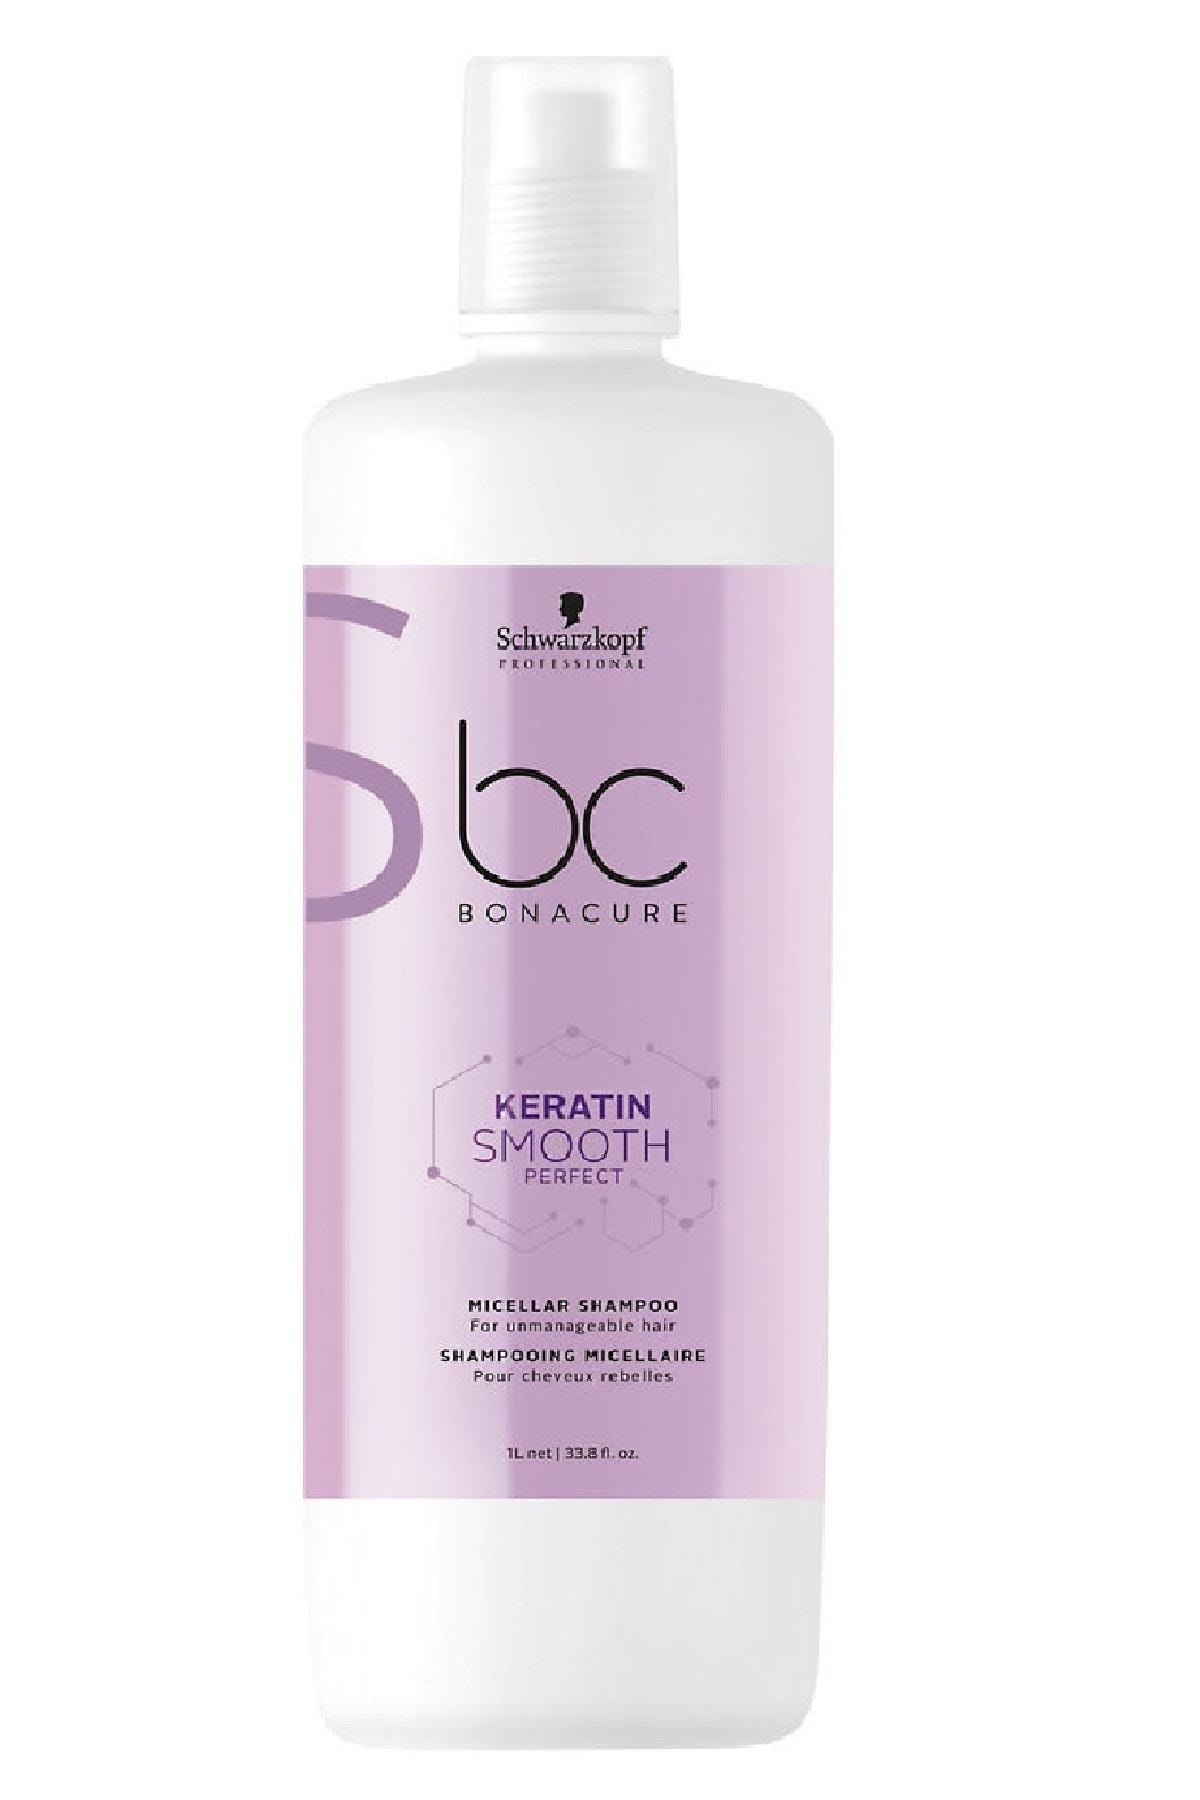 Bonacure Keratin Smooth Perfect Şampuan 1000 ml 4045787426786 1